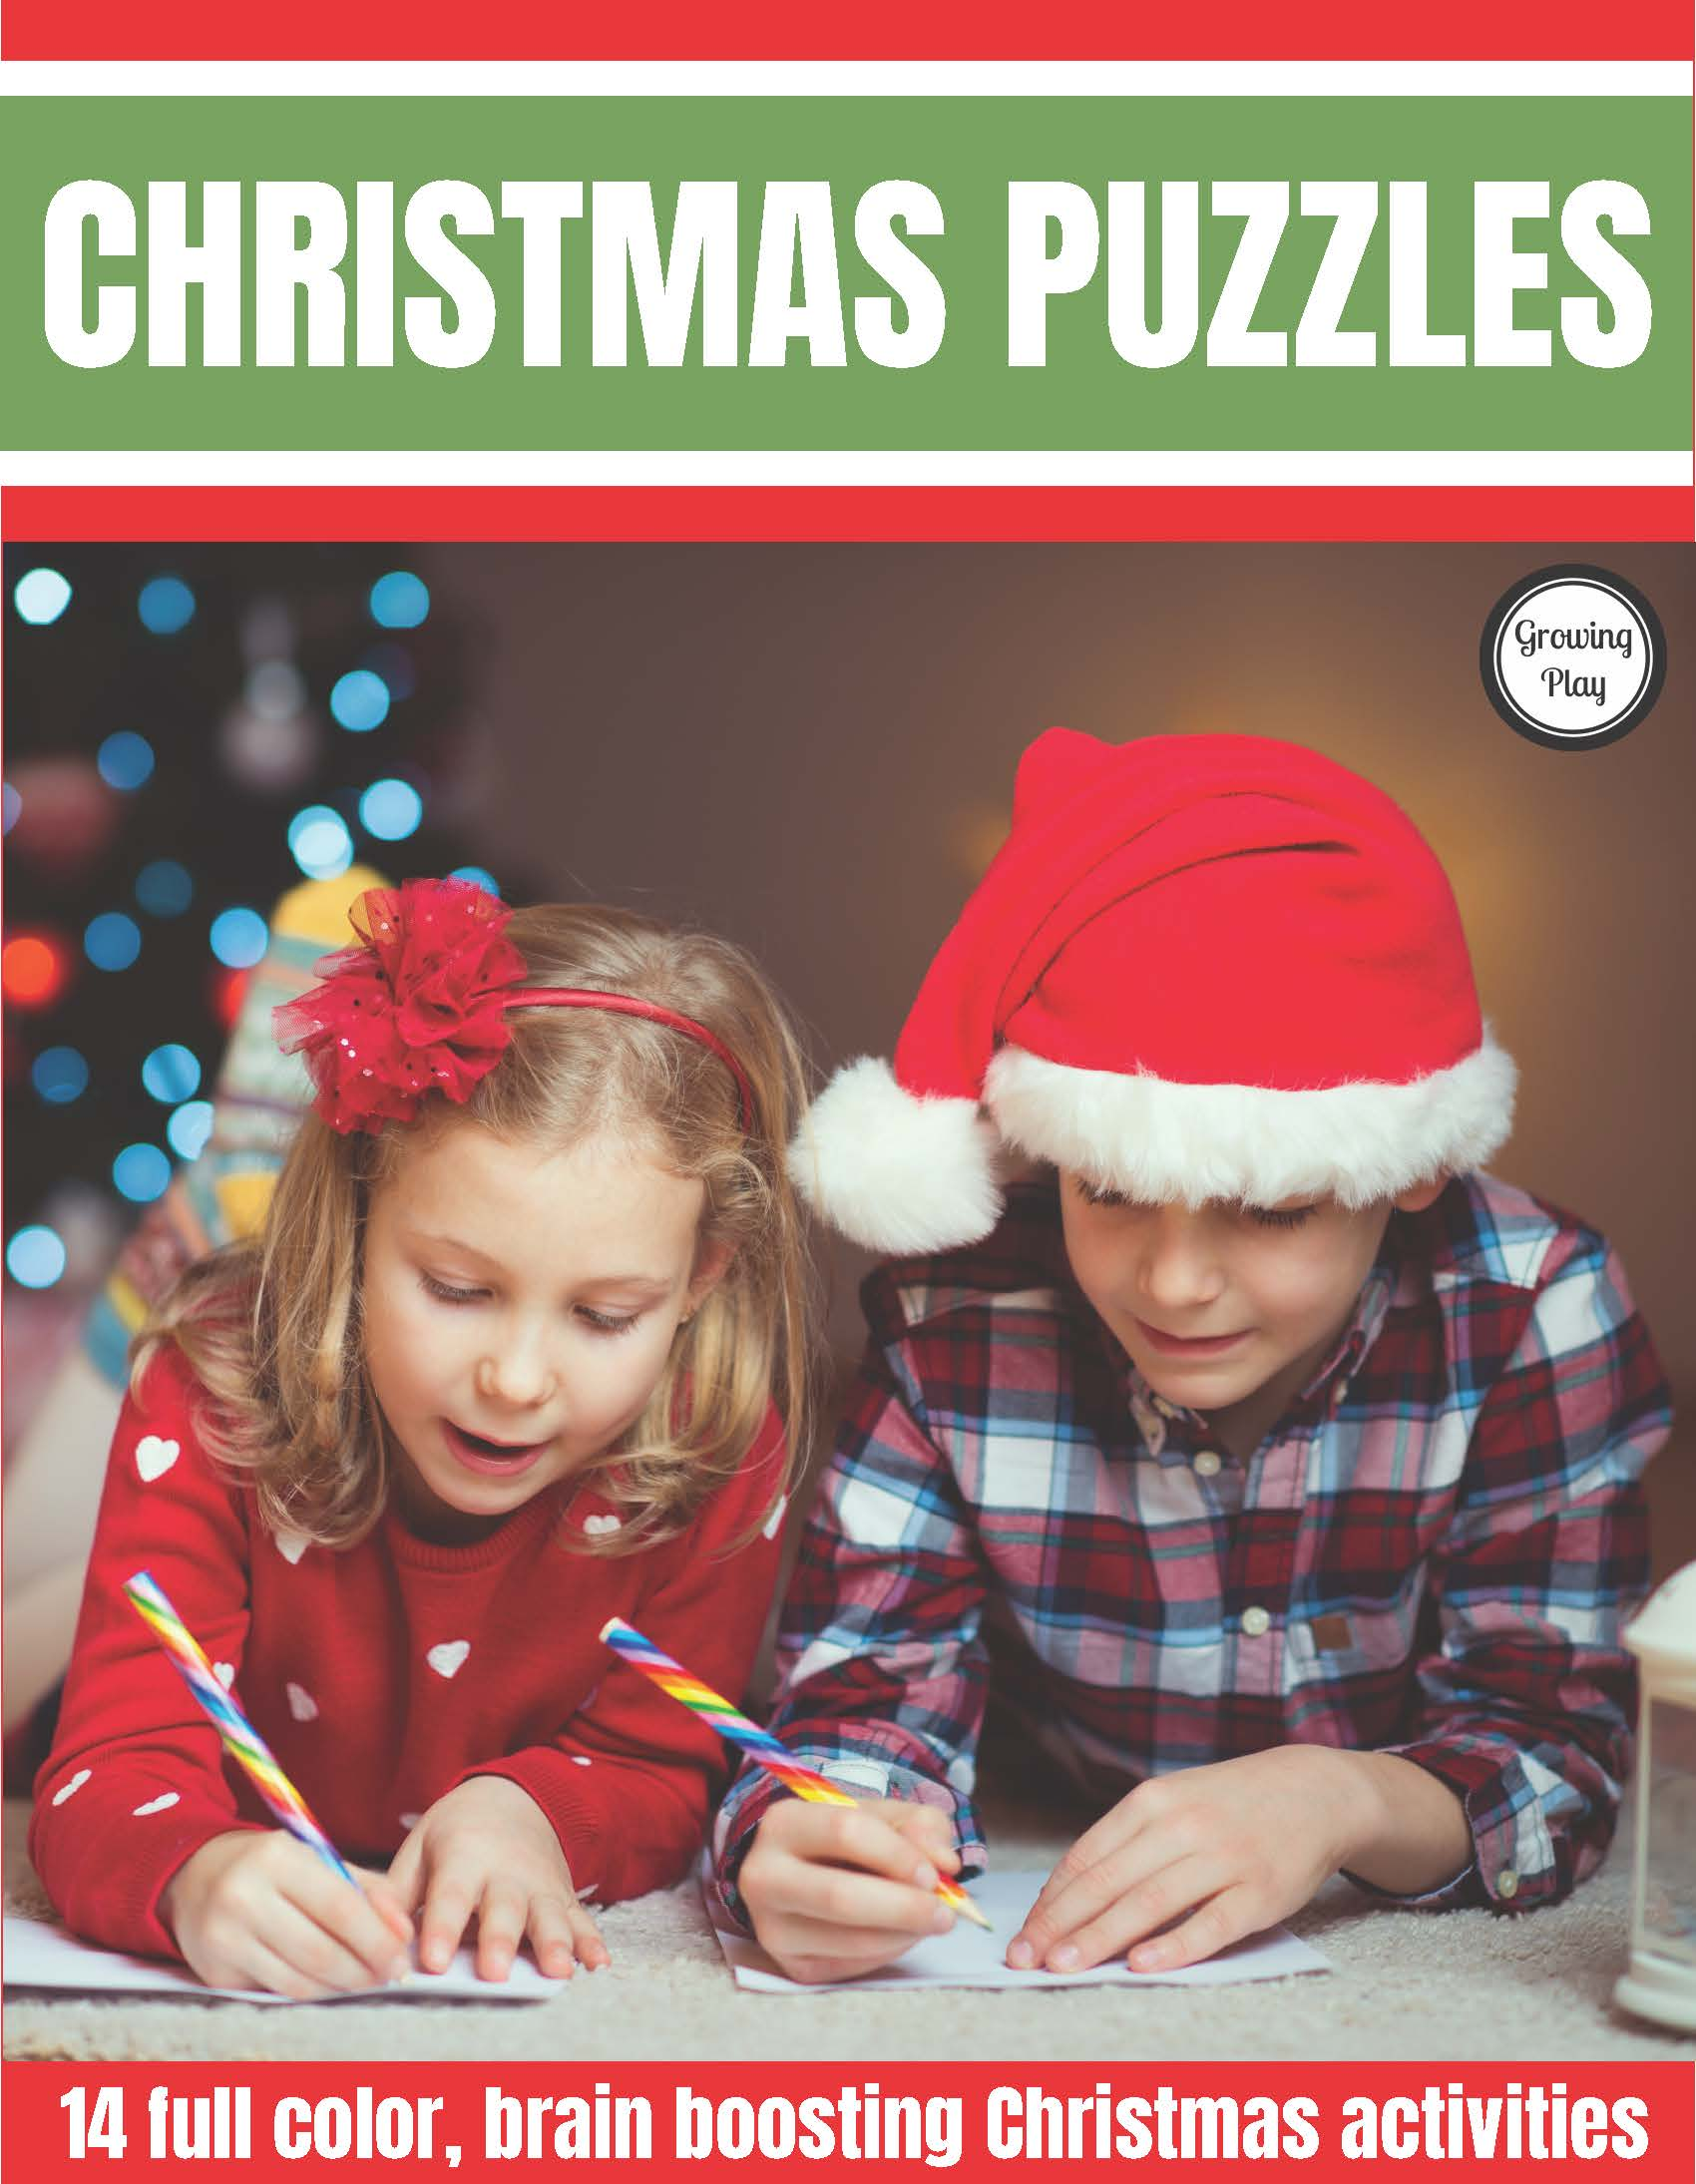 The Christmas Puzzles Packet includes full color, brain boosting, FUN Christmas activities to complete.  Look and find challenges, mazes, puzzles and more all for when the kids need some extra entertainment this holiday season.